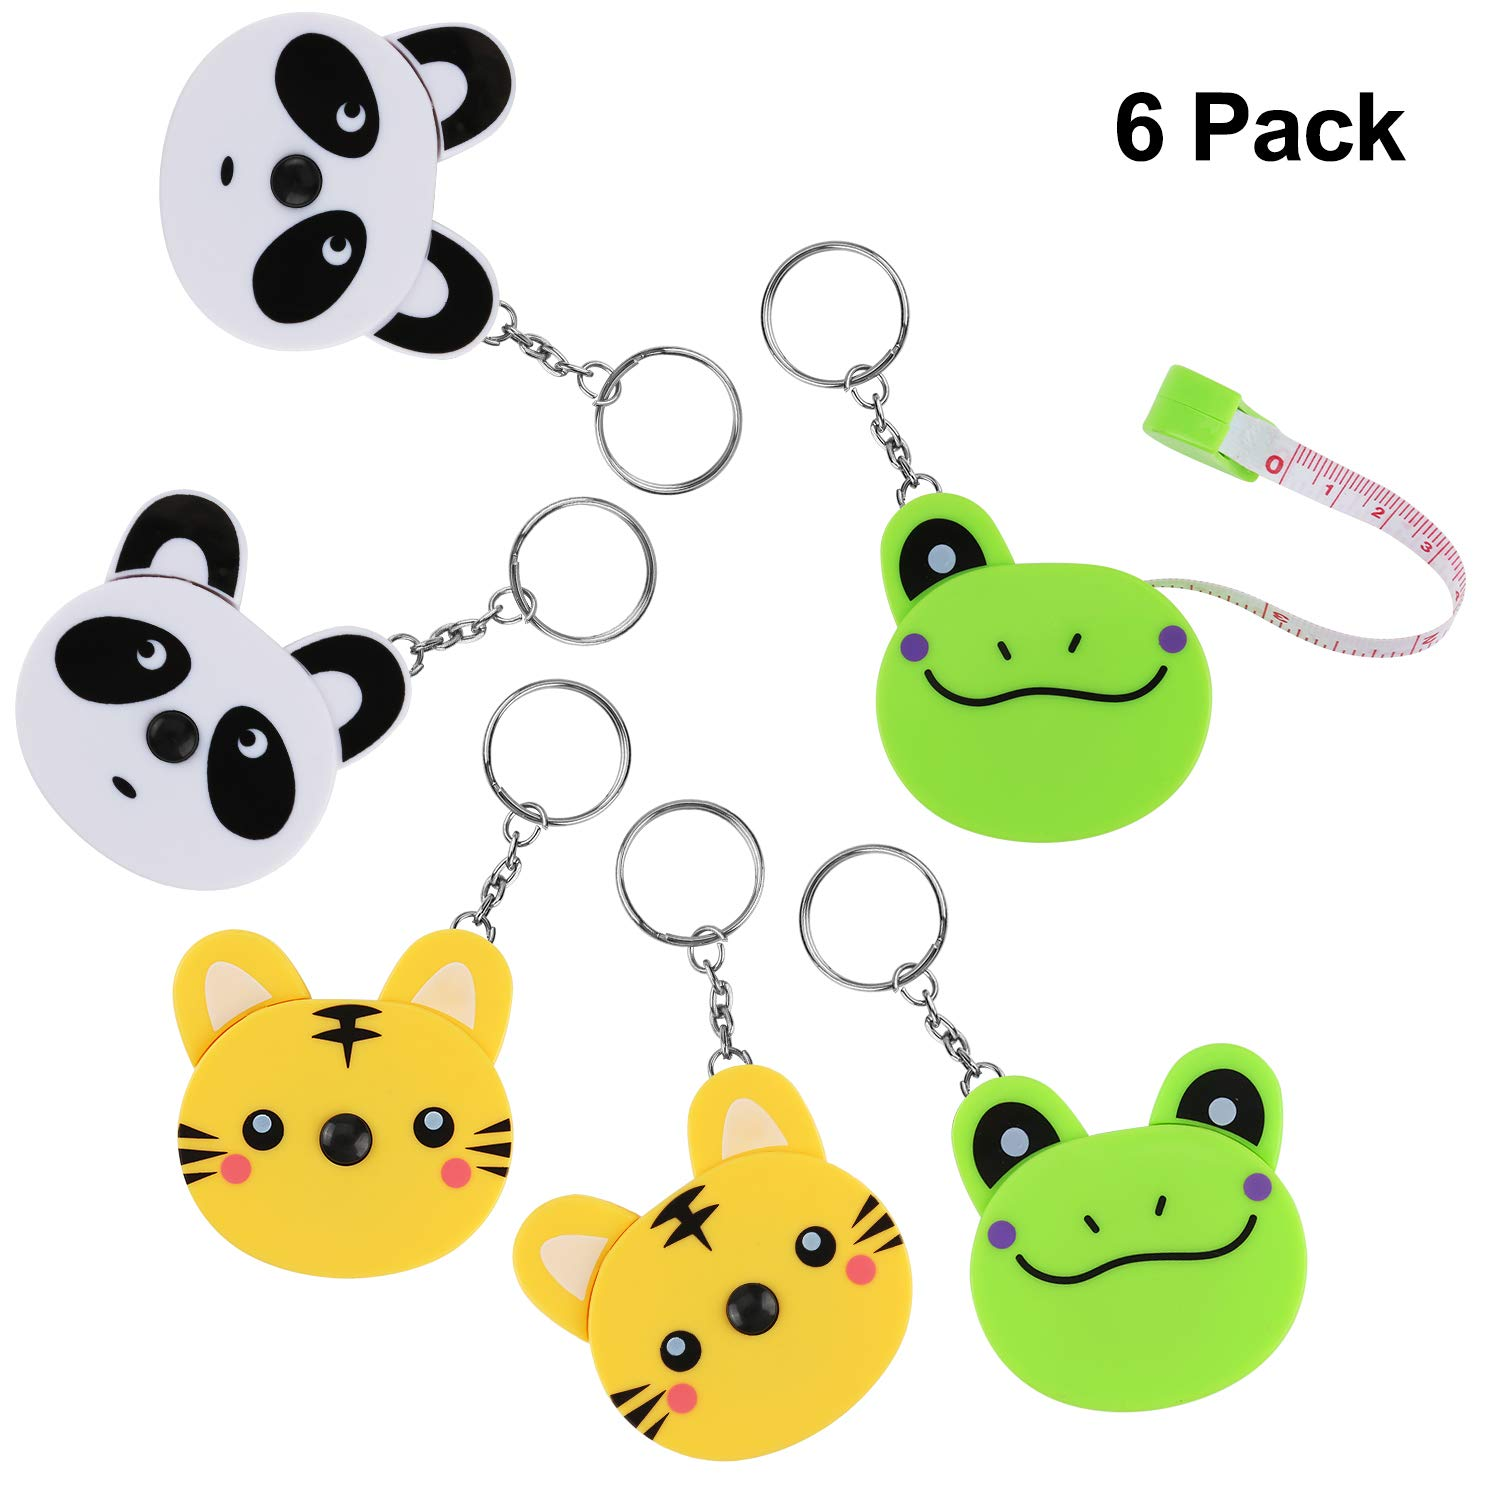 Measuring Tape Measure, RETRACTABLE, 60-INCH 1.5 METER, EASY TO READ, POCKET SIZE, SOFT, Body Tailor Sewing Craft Cloth Tape Measure, GIFT Tape Measure, CUTE ANIMAL